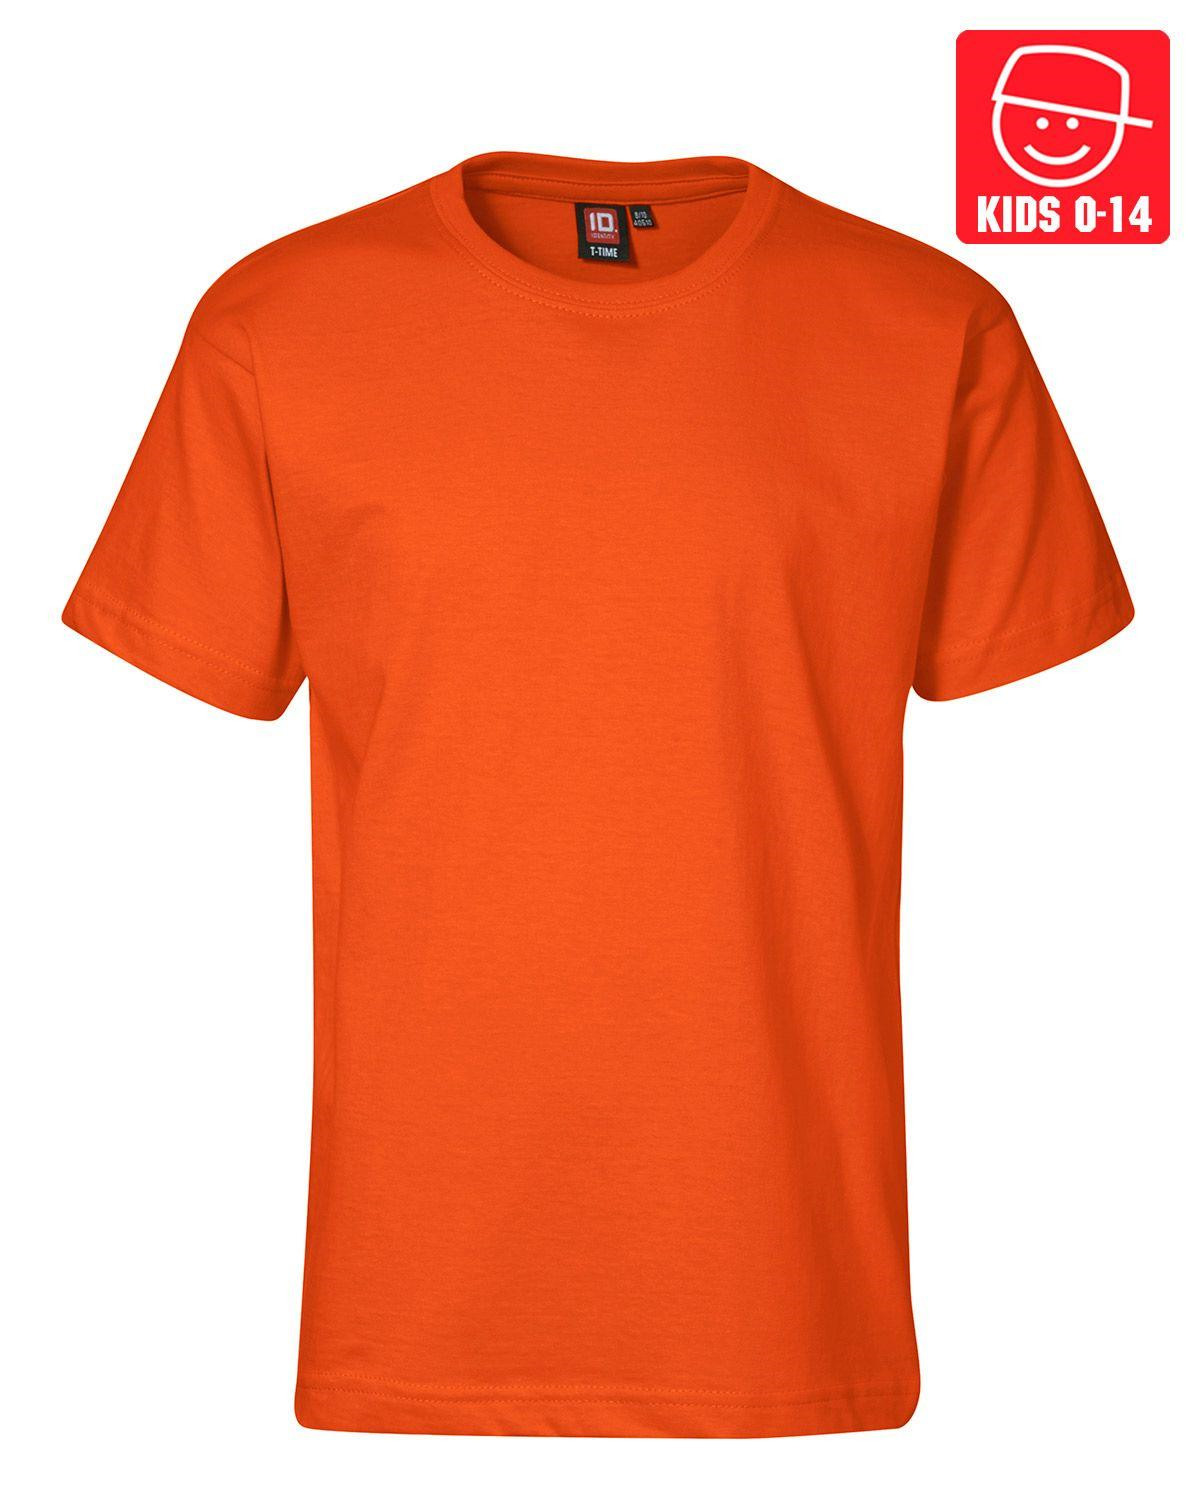 Image of   ID T-TIME T-shirt (Orange, 128)